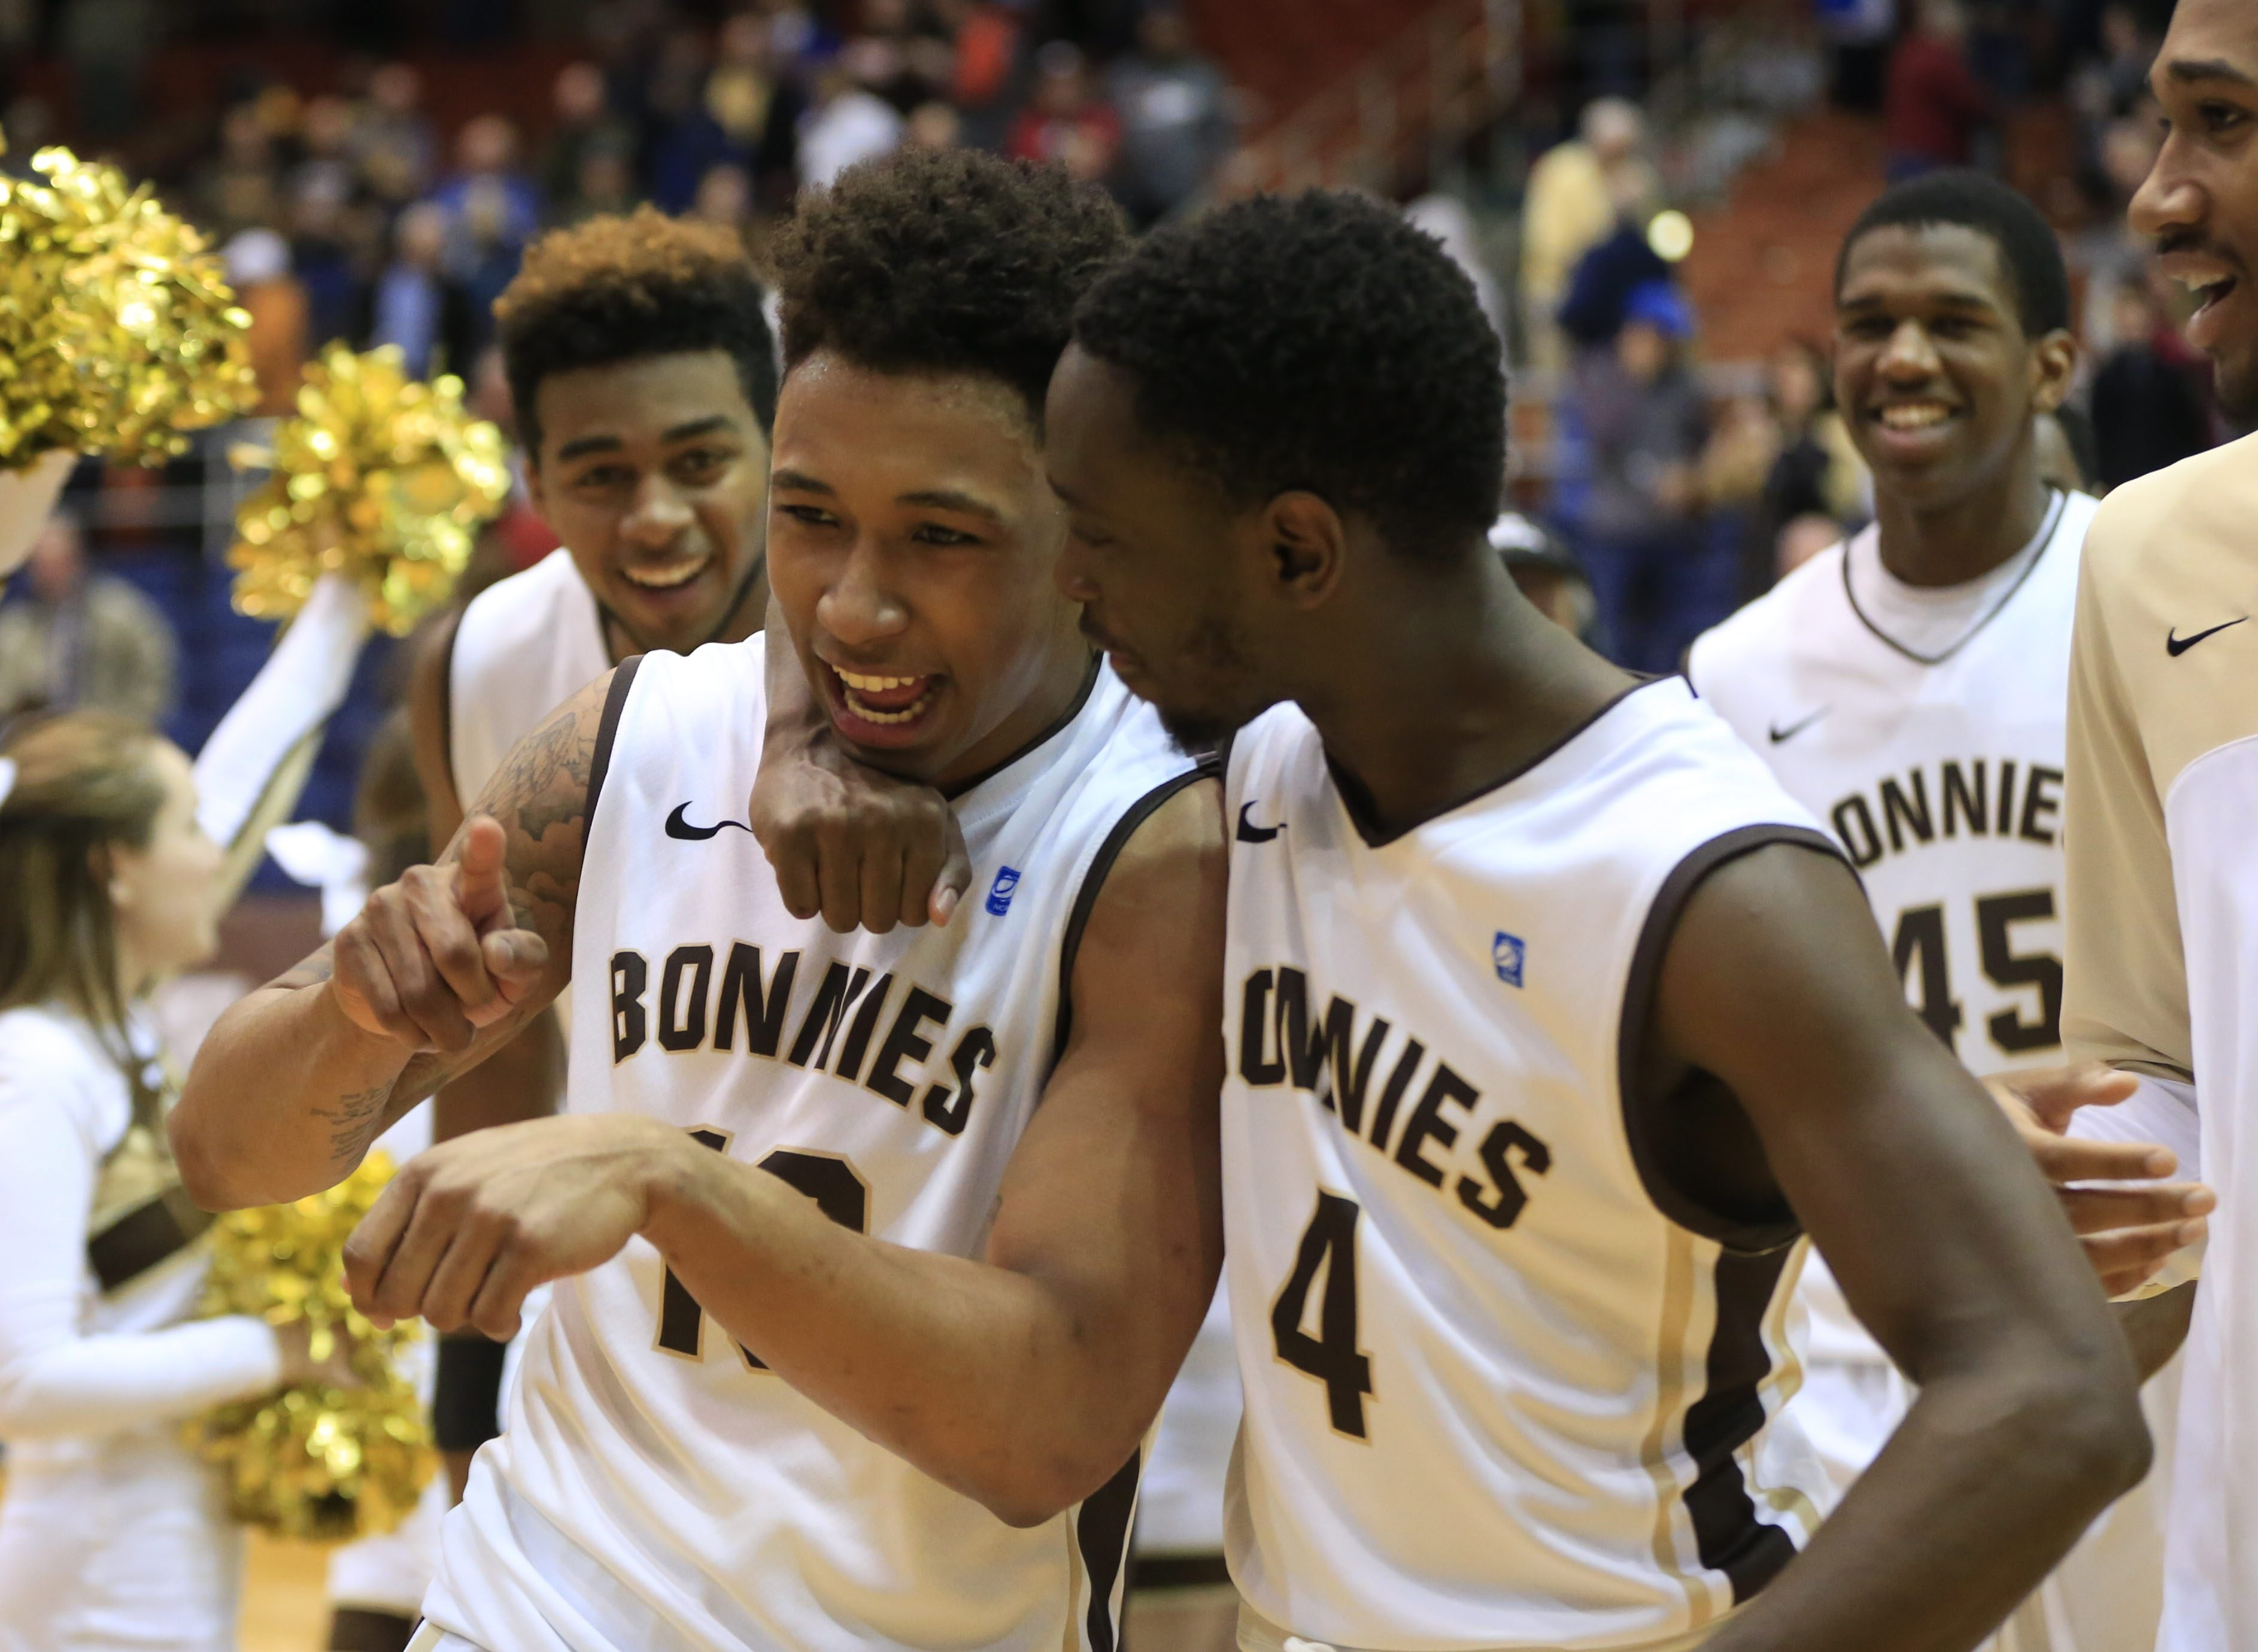 St. Bonaventure's Jaylen Adams, left, is congratulated by Nelson Kaputo after hitting a last-second three-point shot to beat Saint Louis on Sunday at the Reilly Center.